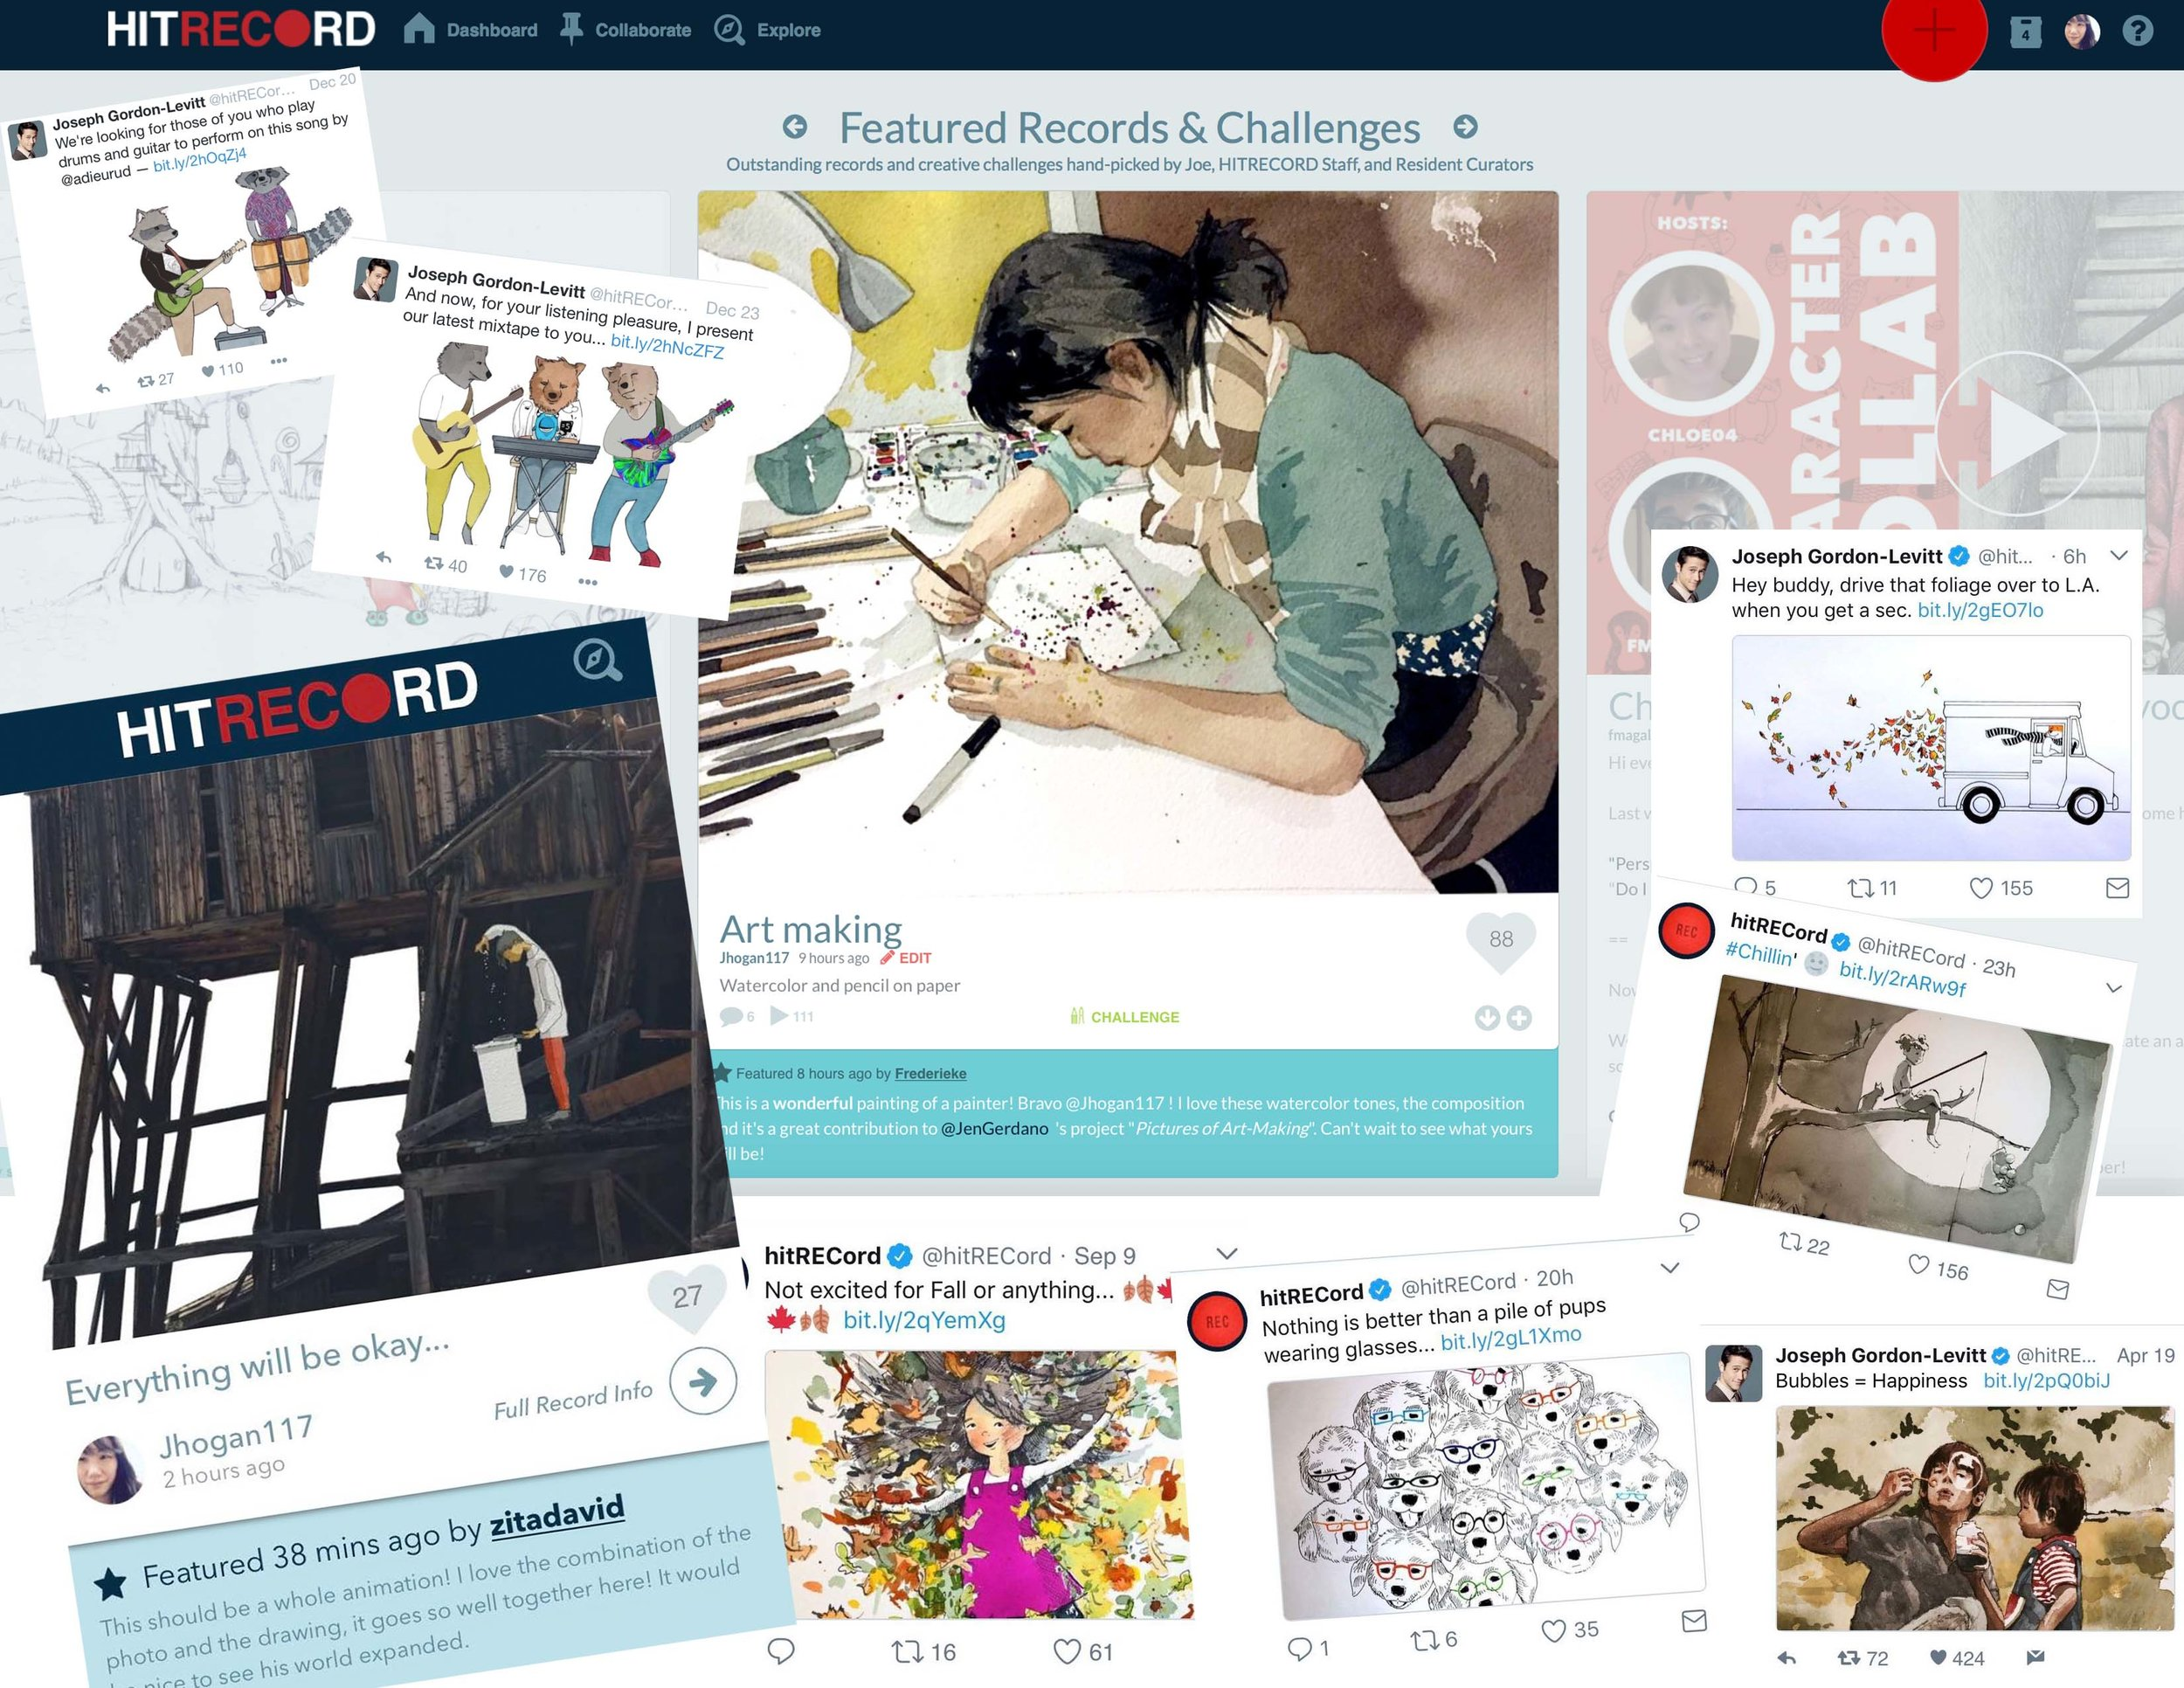 hitRECord! - Key Illustrator, USAIHitRECord is an online and collaborate production company for all kinds of artists. It's super rad. Learn more here!